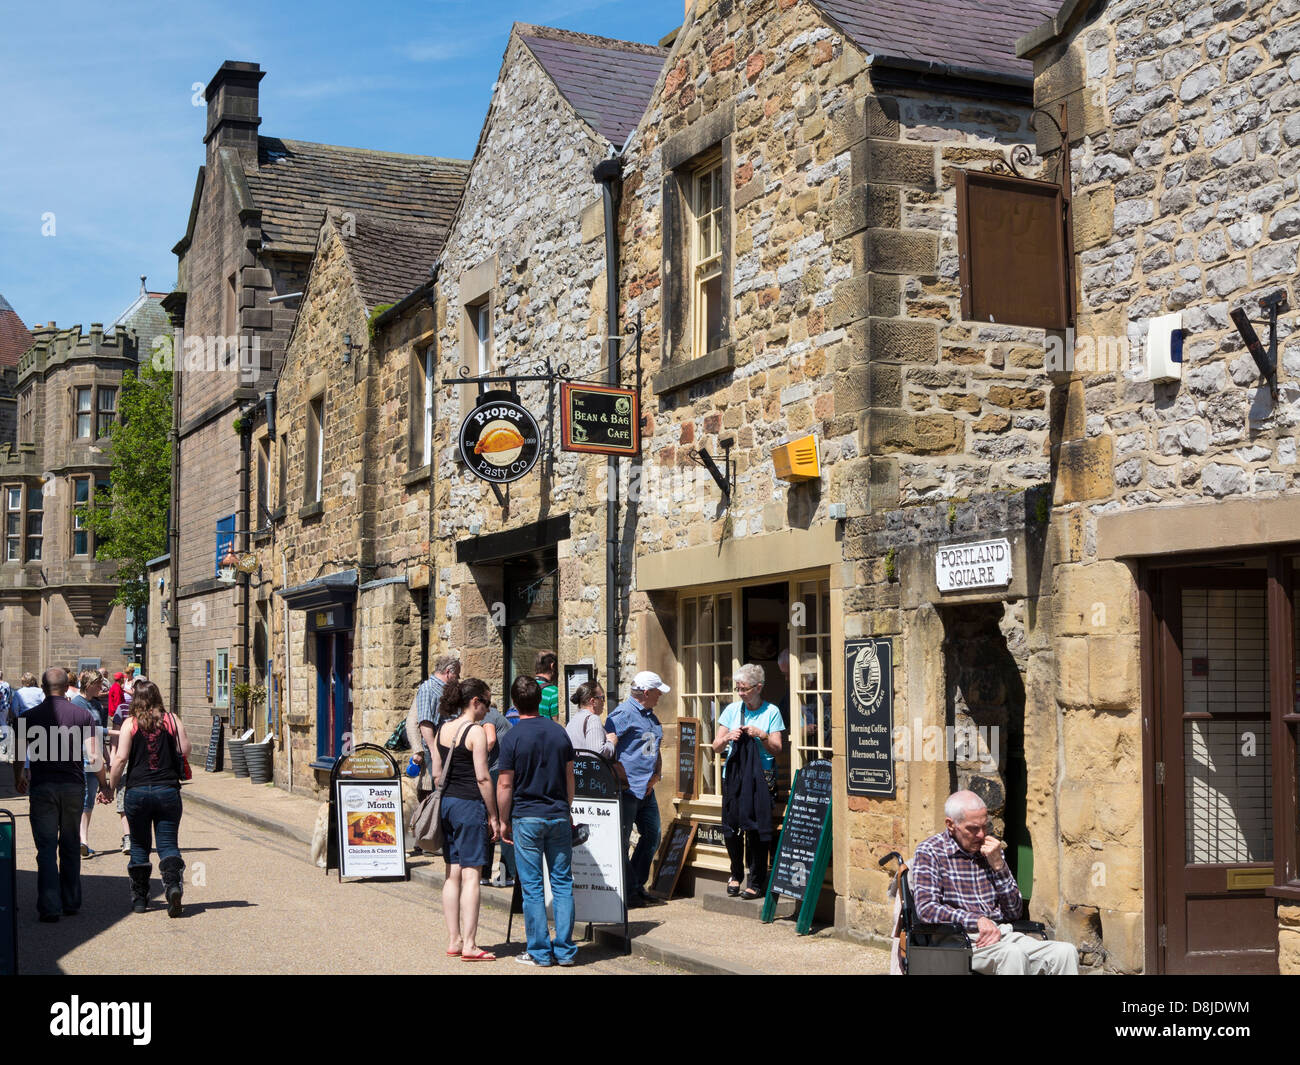 Bakewell High Street with shops and tourists, Derbyshire, England. - Stock Image